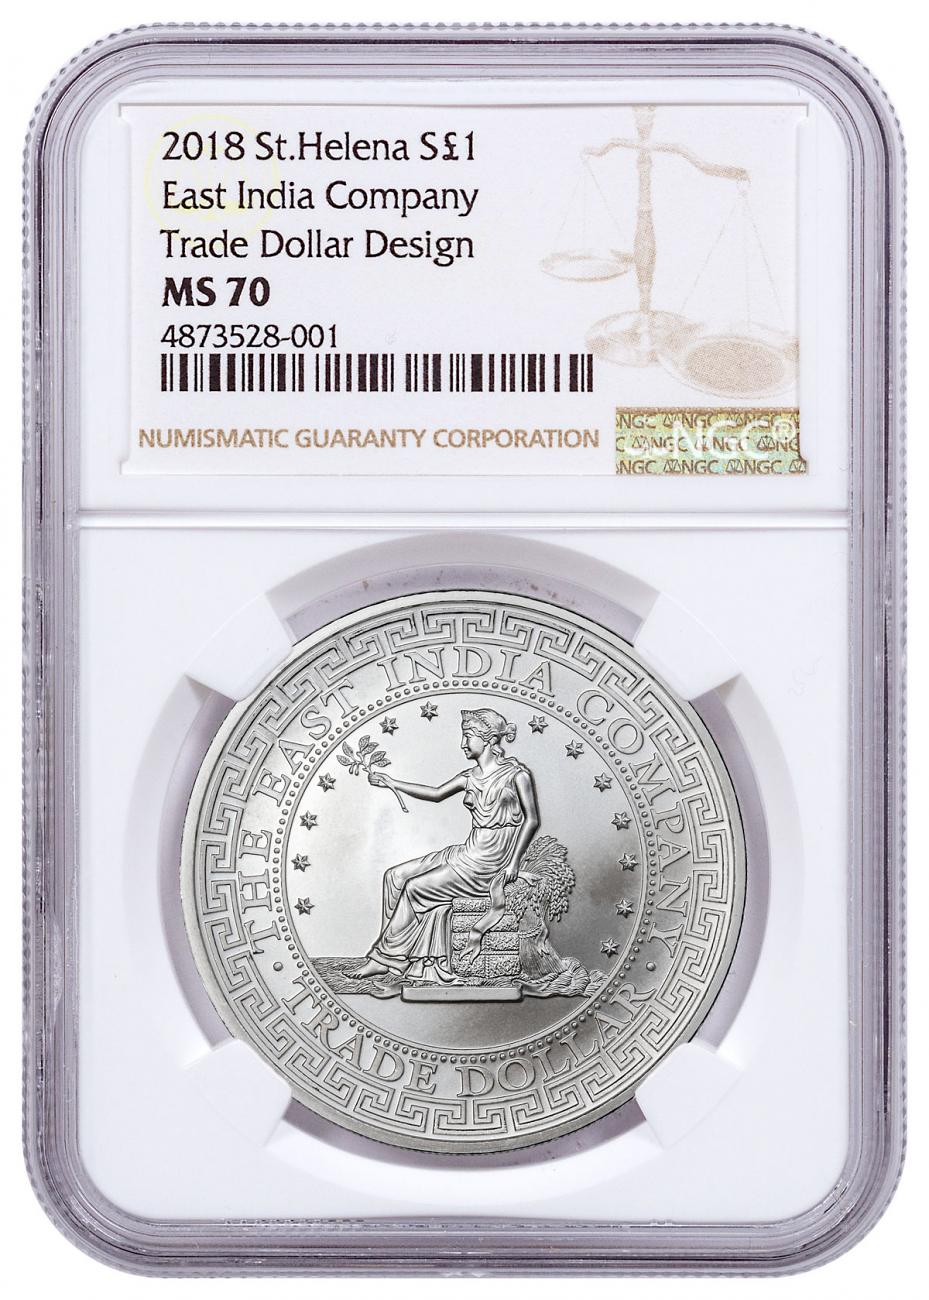 2018 St. Helena St. Helena Silver £1 East India Silver Trade Dollar NGC MS70